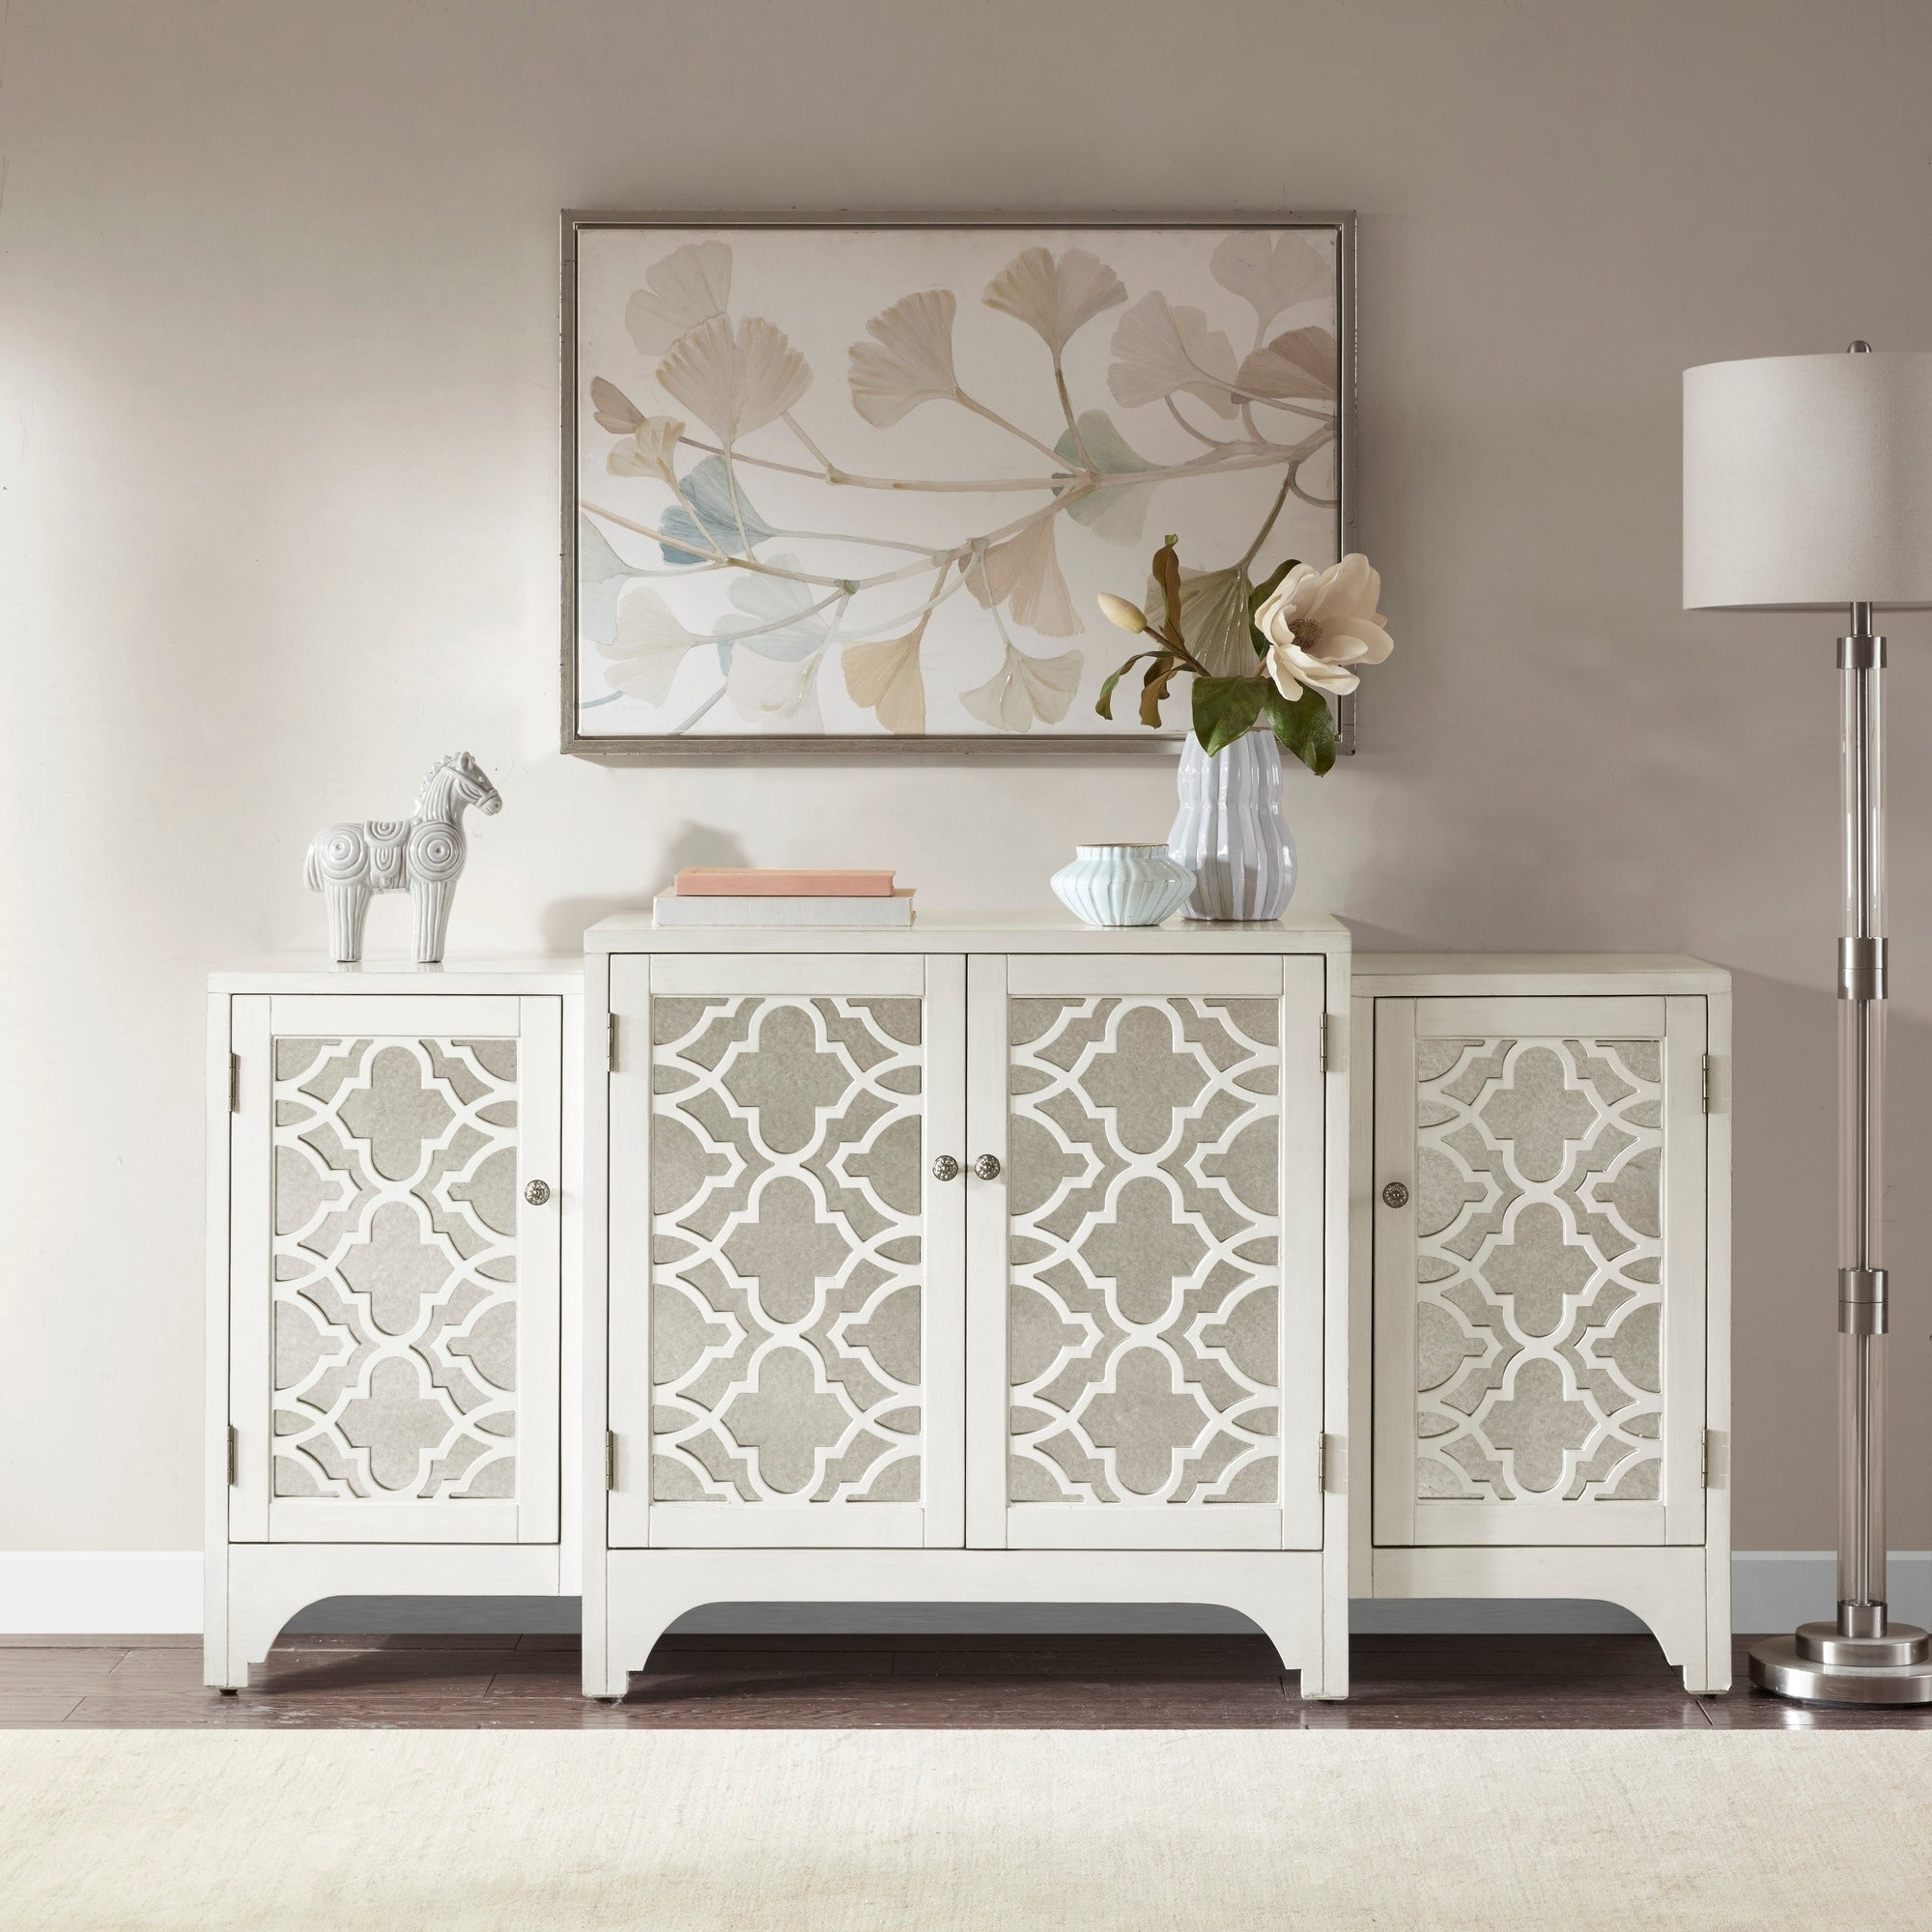 Madison Park Nevaeh Cream Dining Buffet Server Quatrefoil Design With  Mirrored Doors For Mirrored Double Door Buffets (View 10 of 20)